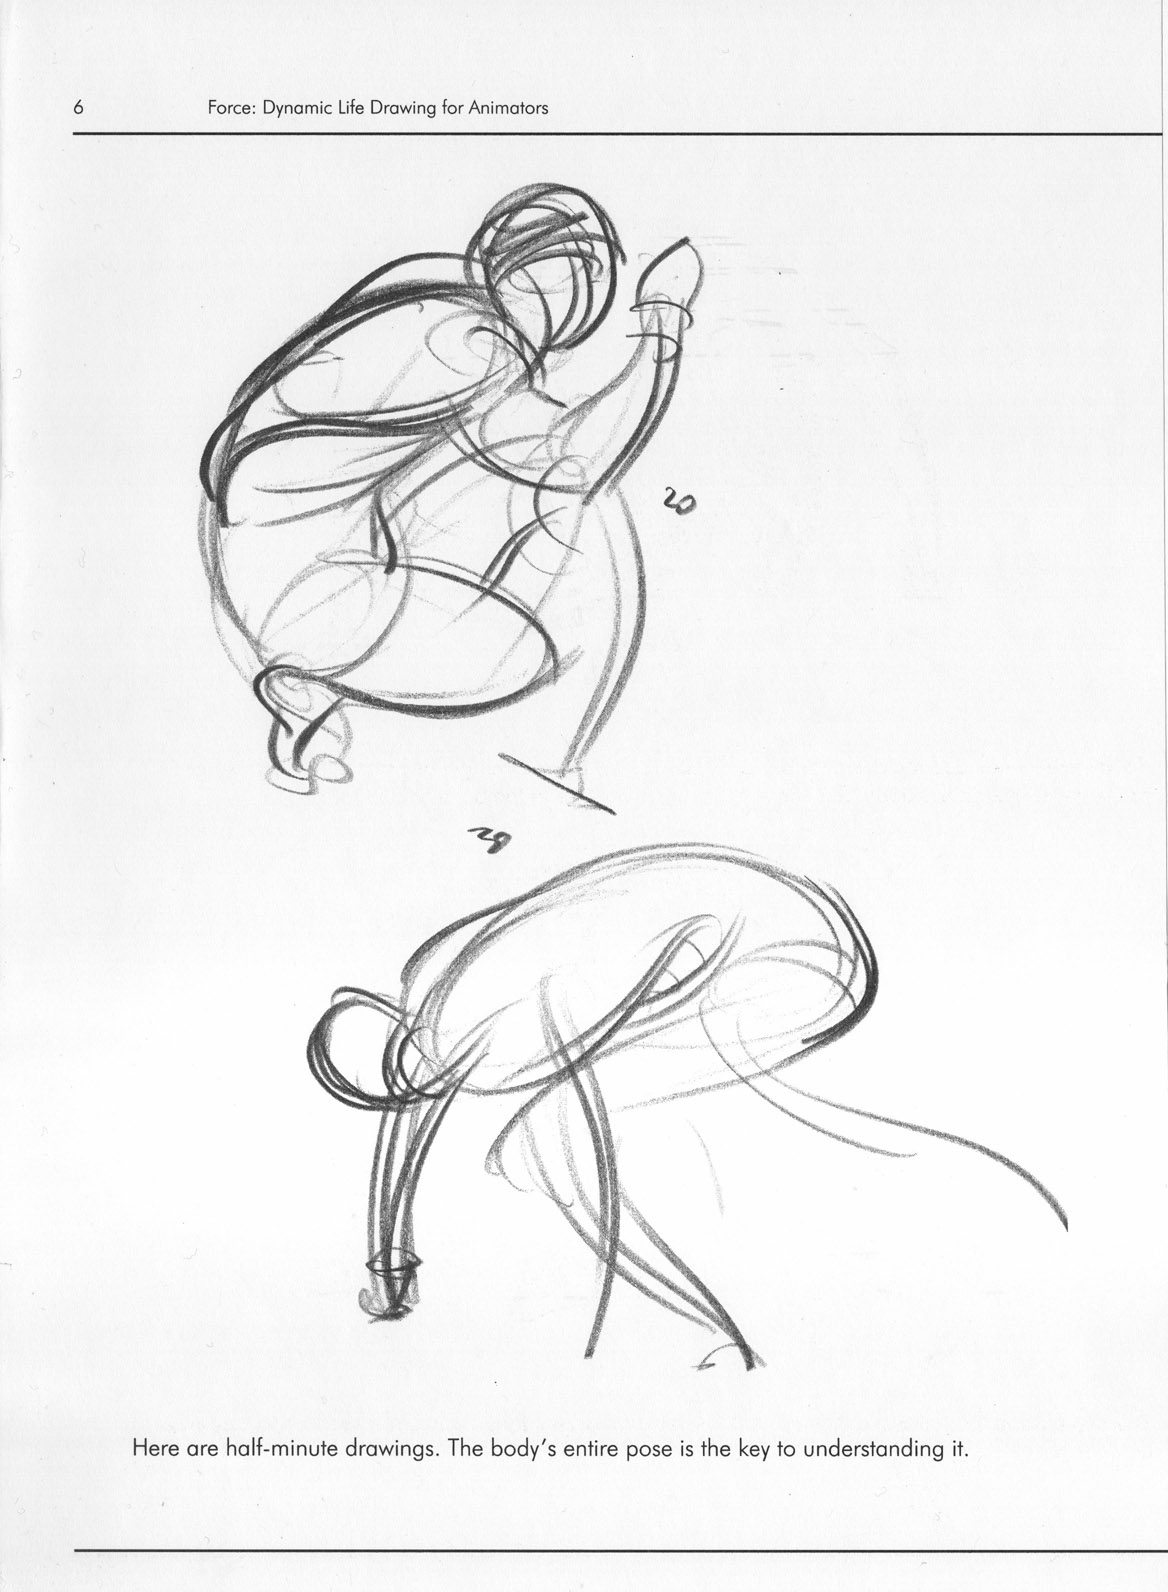 1168x1592 Force Dynamic Life Drawing For Animators